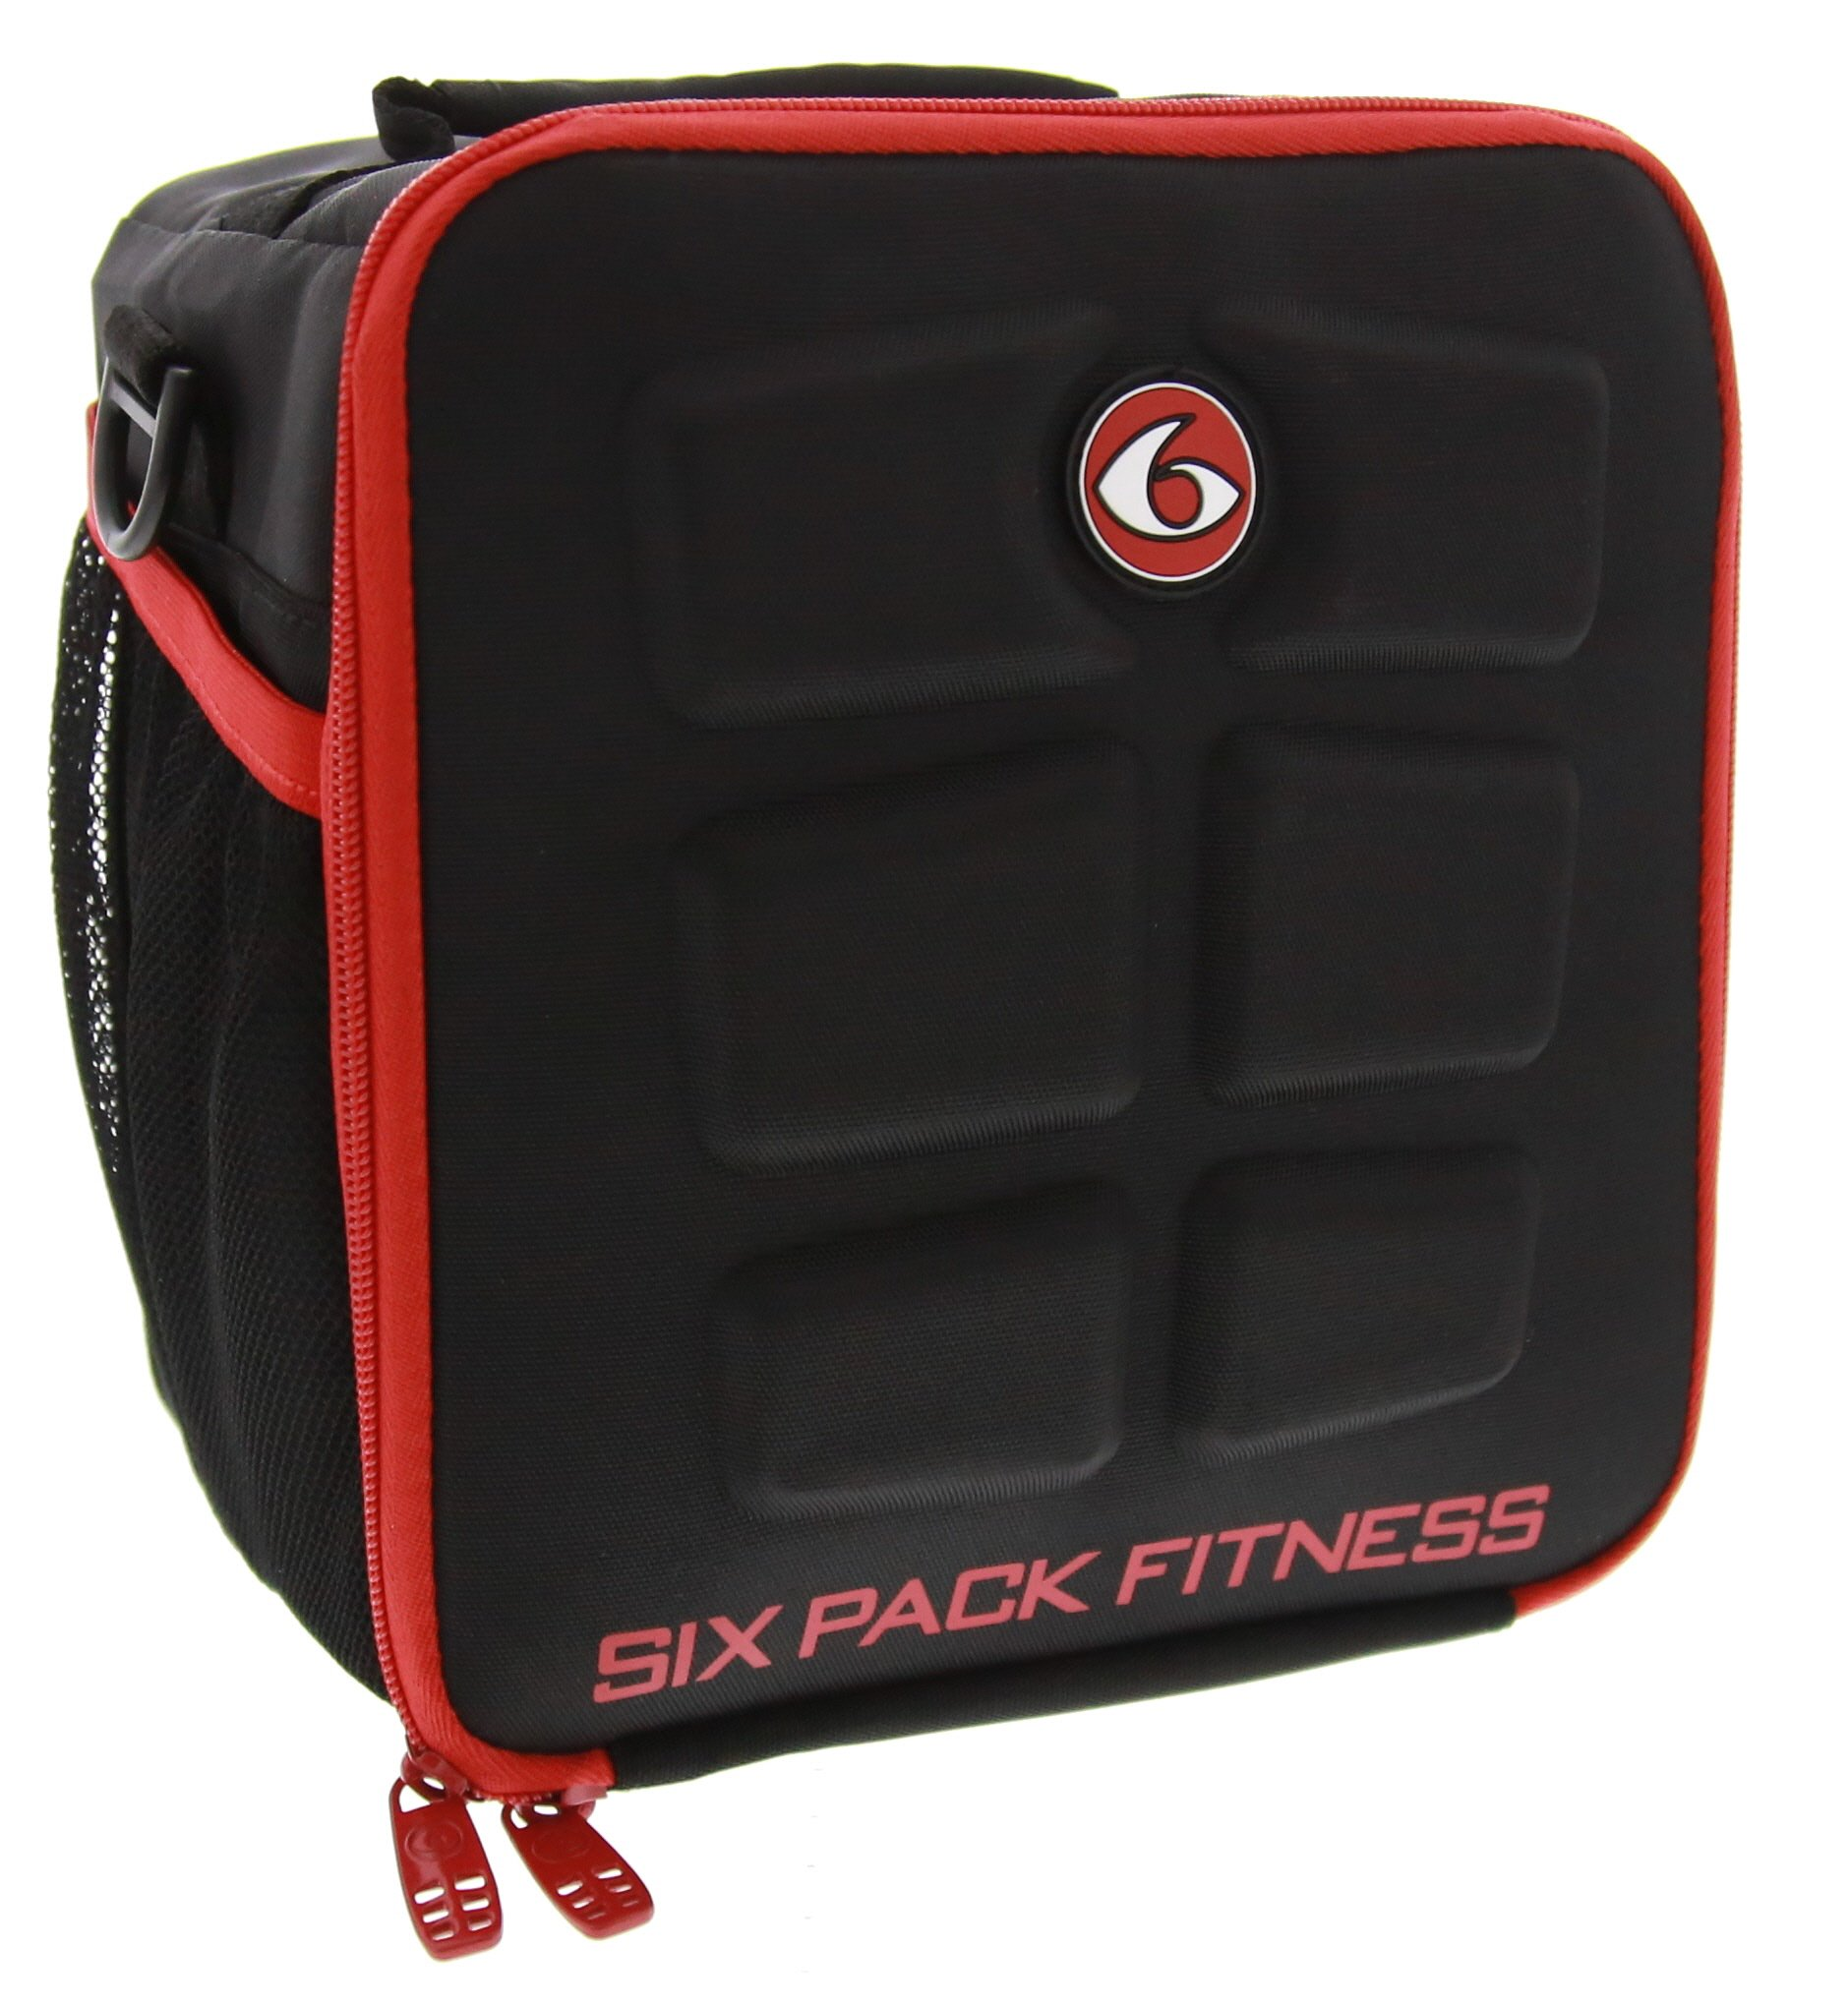 6 Pack Fitness Cube Americas #1 Choice in Meal Management 3 - Meal (Black/Red) by 6 Pack Fitness